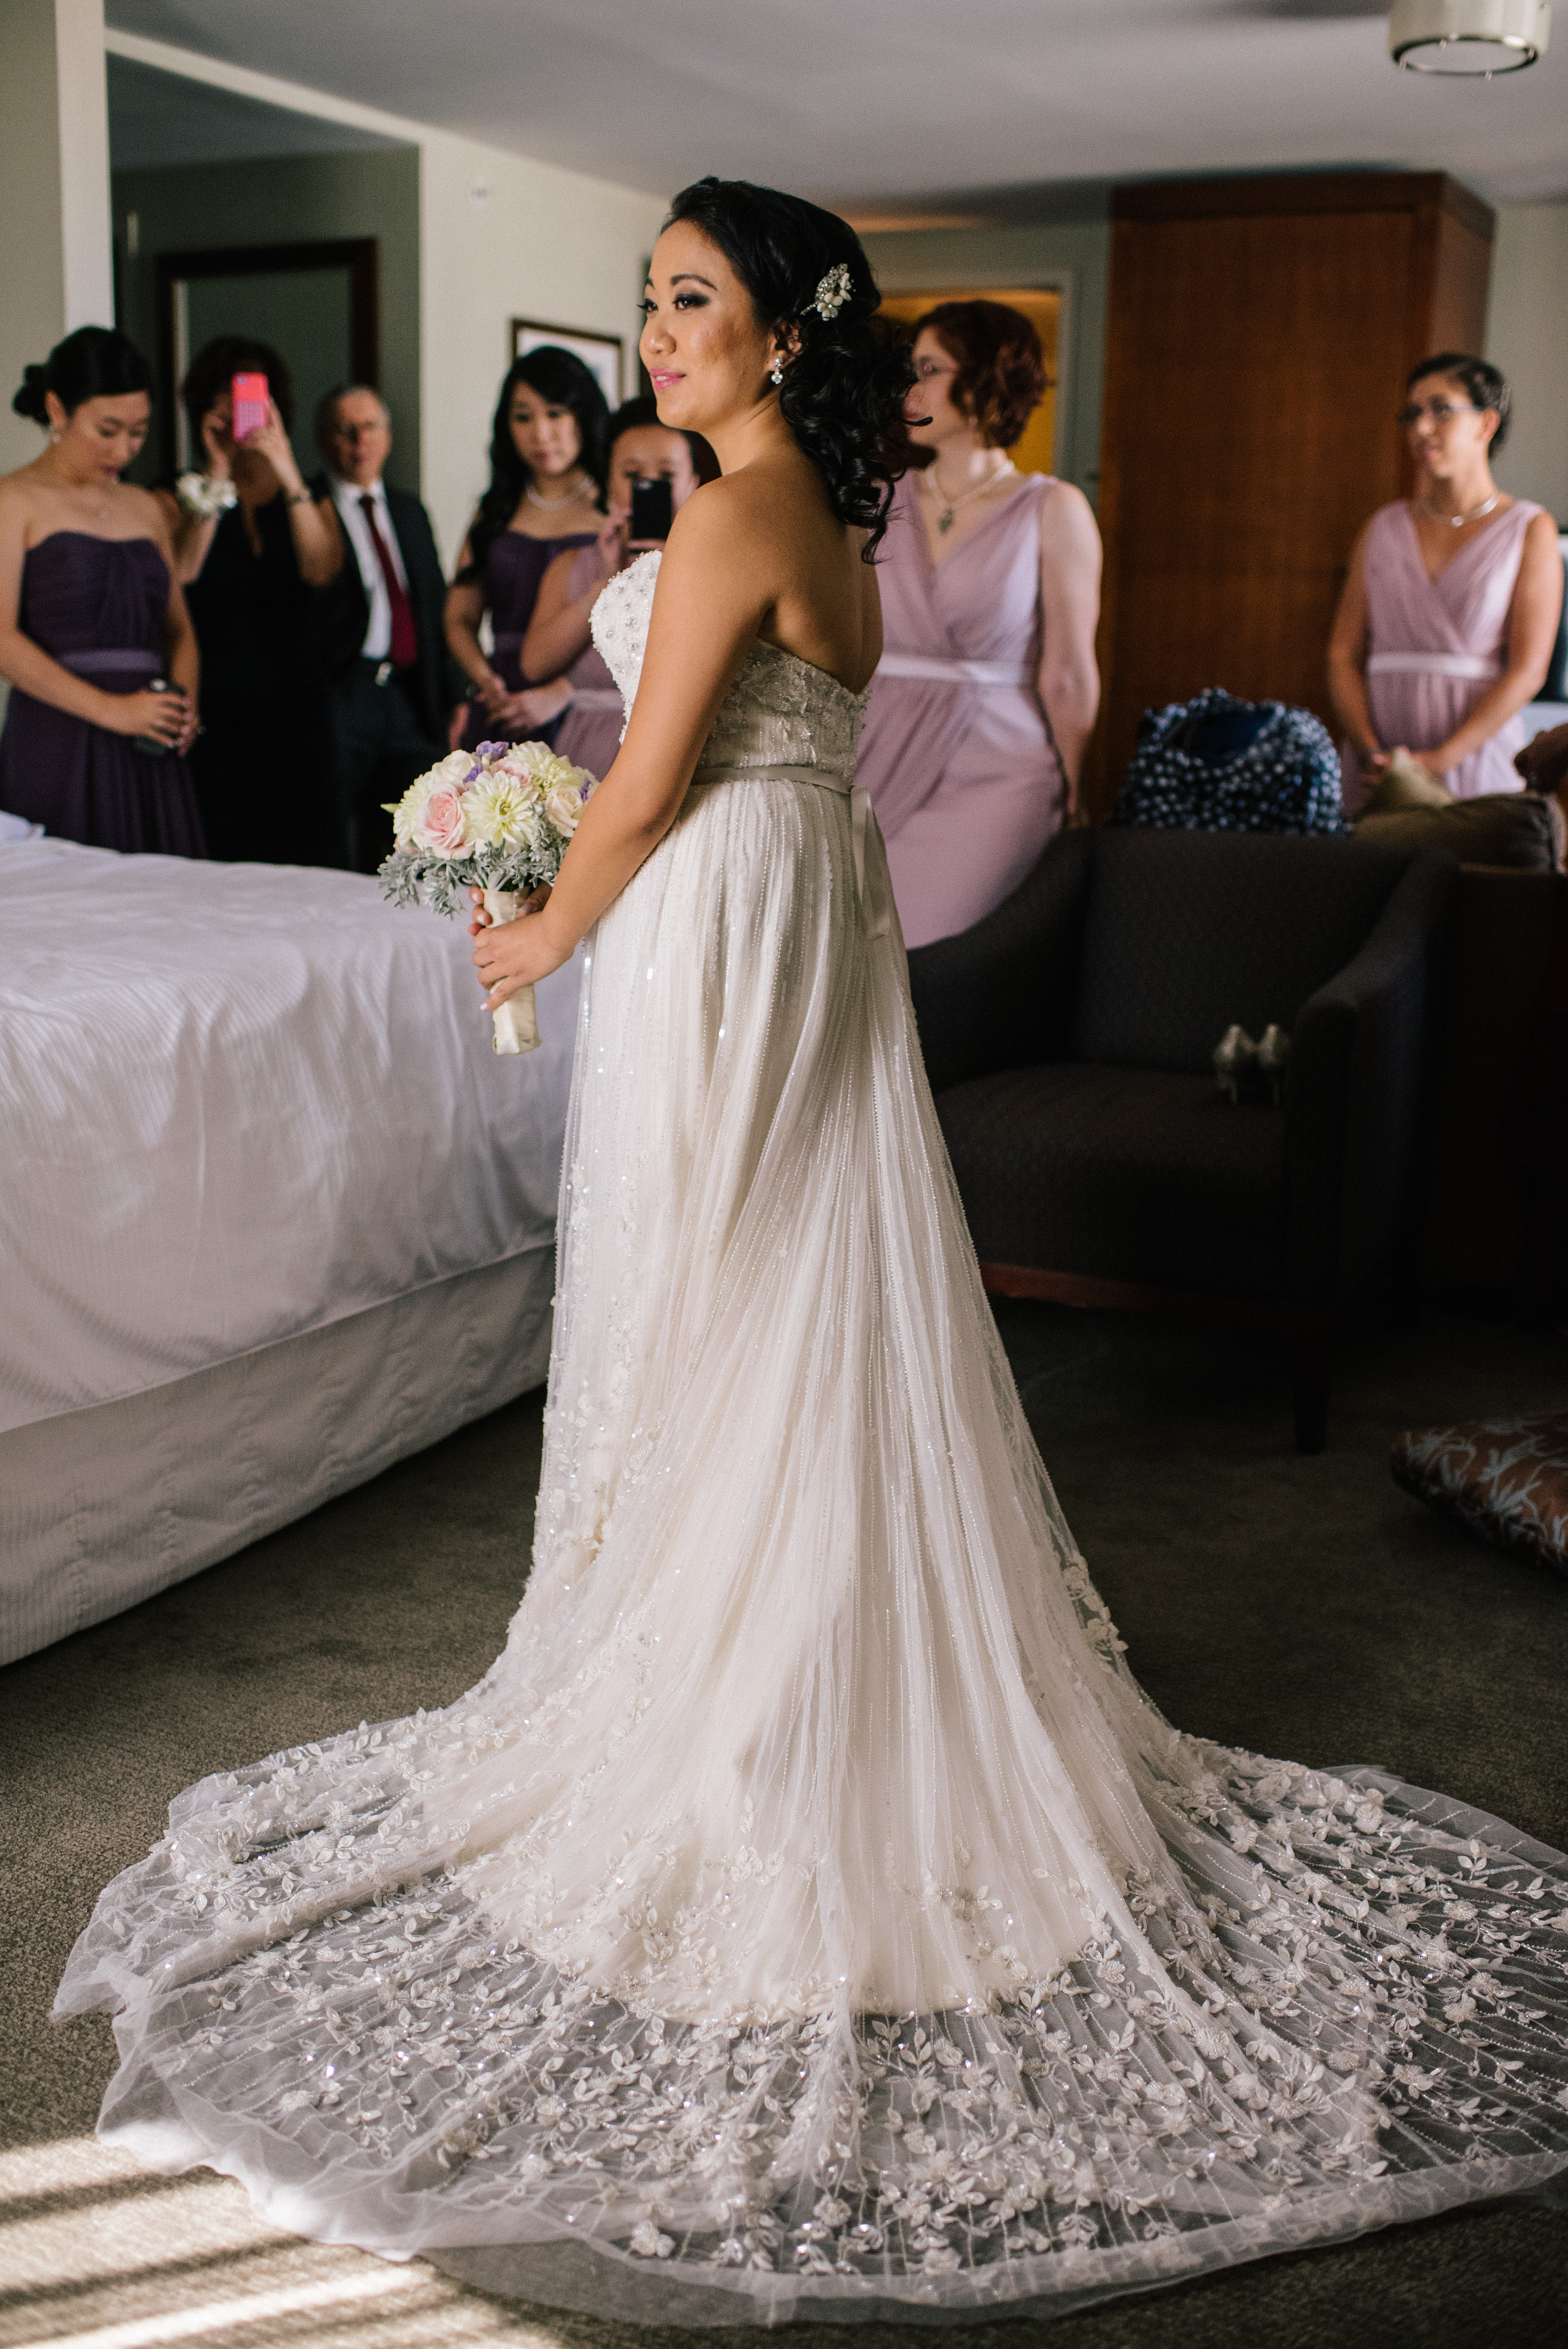 Our New York City bride rocked this vintage wedding gown and we are swooning over the beading and detail!